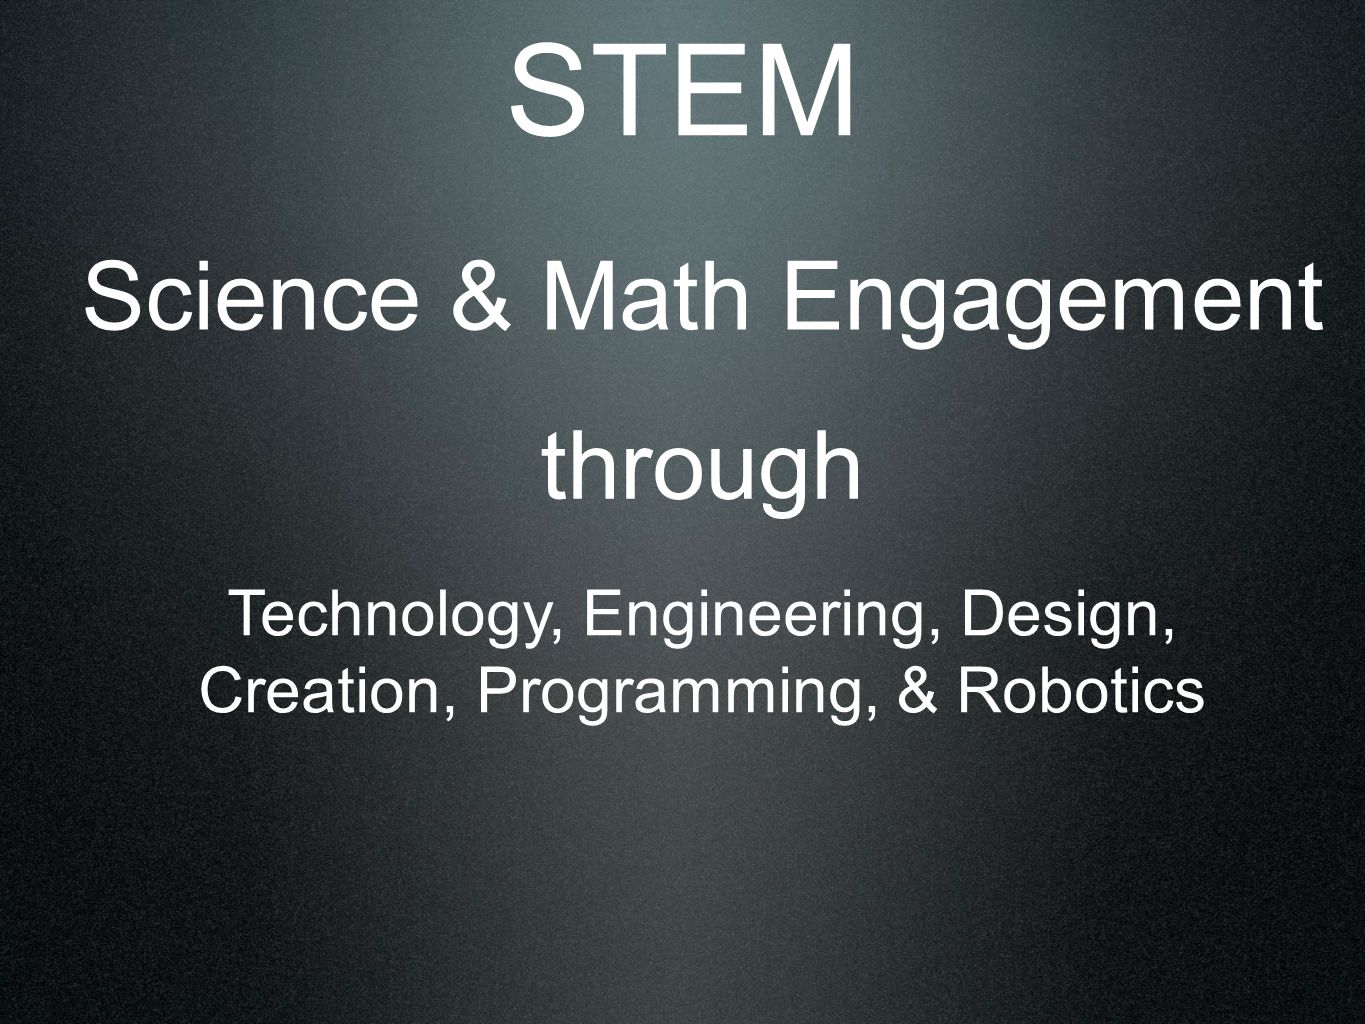 STEM Science & Math Engagement through Technology, Engineering, Design, Creation, Programming, & Robotics